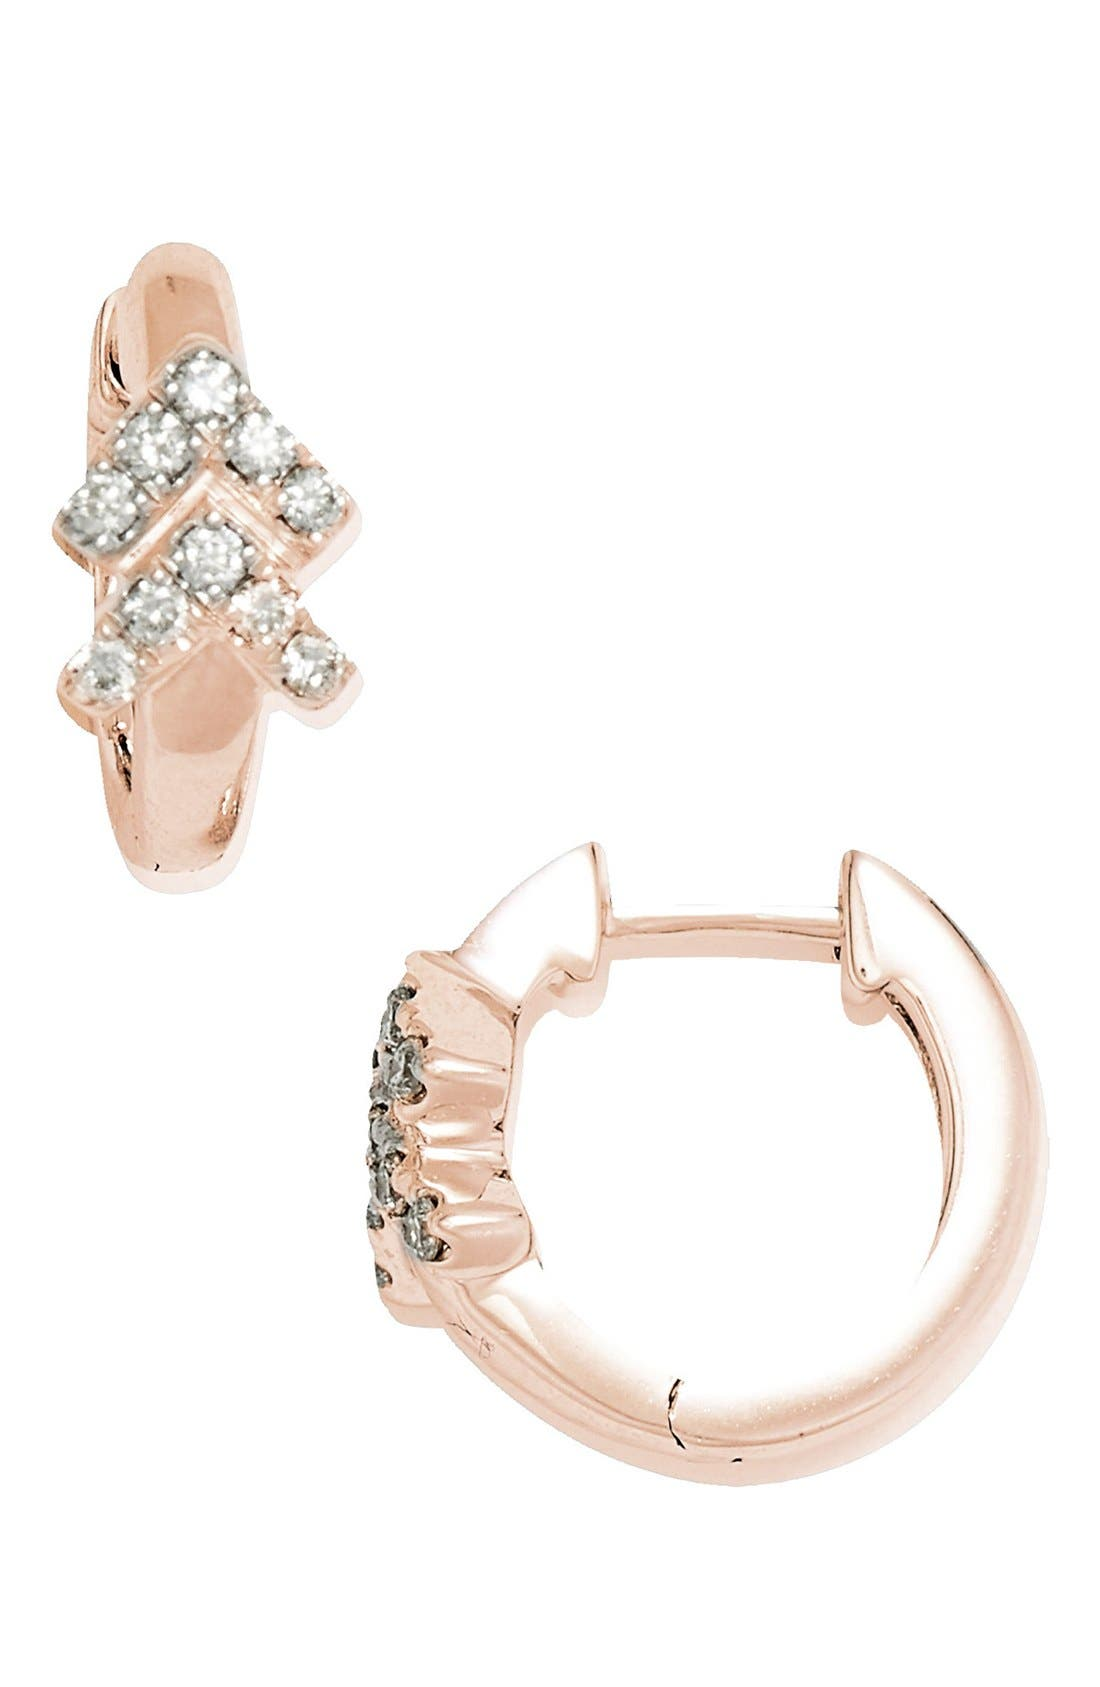 DANA REBECCA DESIGNS Double Arrow Diamond Hoop Earrings